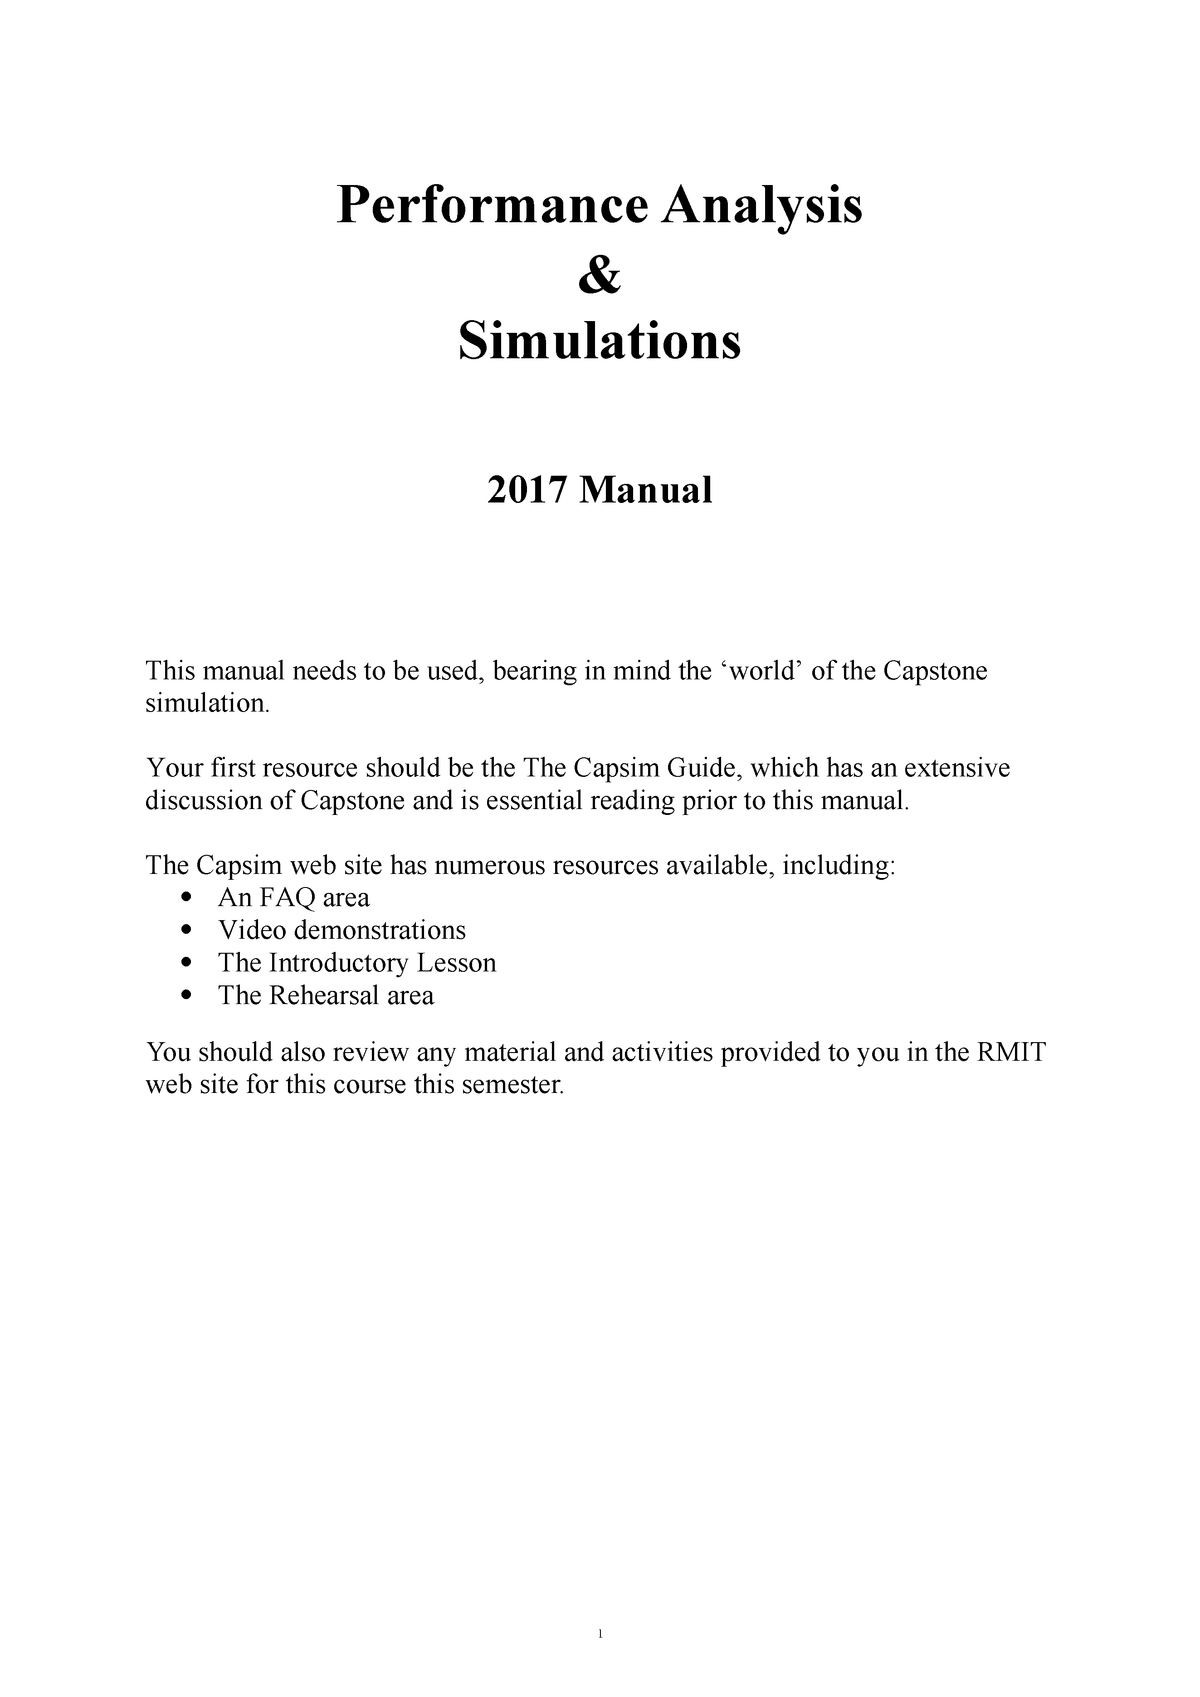 2017 PAS manual - ACCT2170: Performance Analysis and Simulations